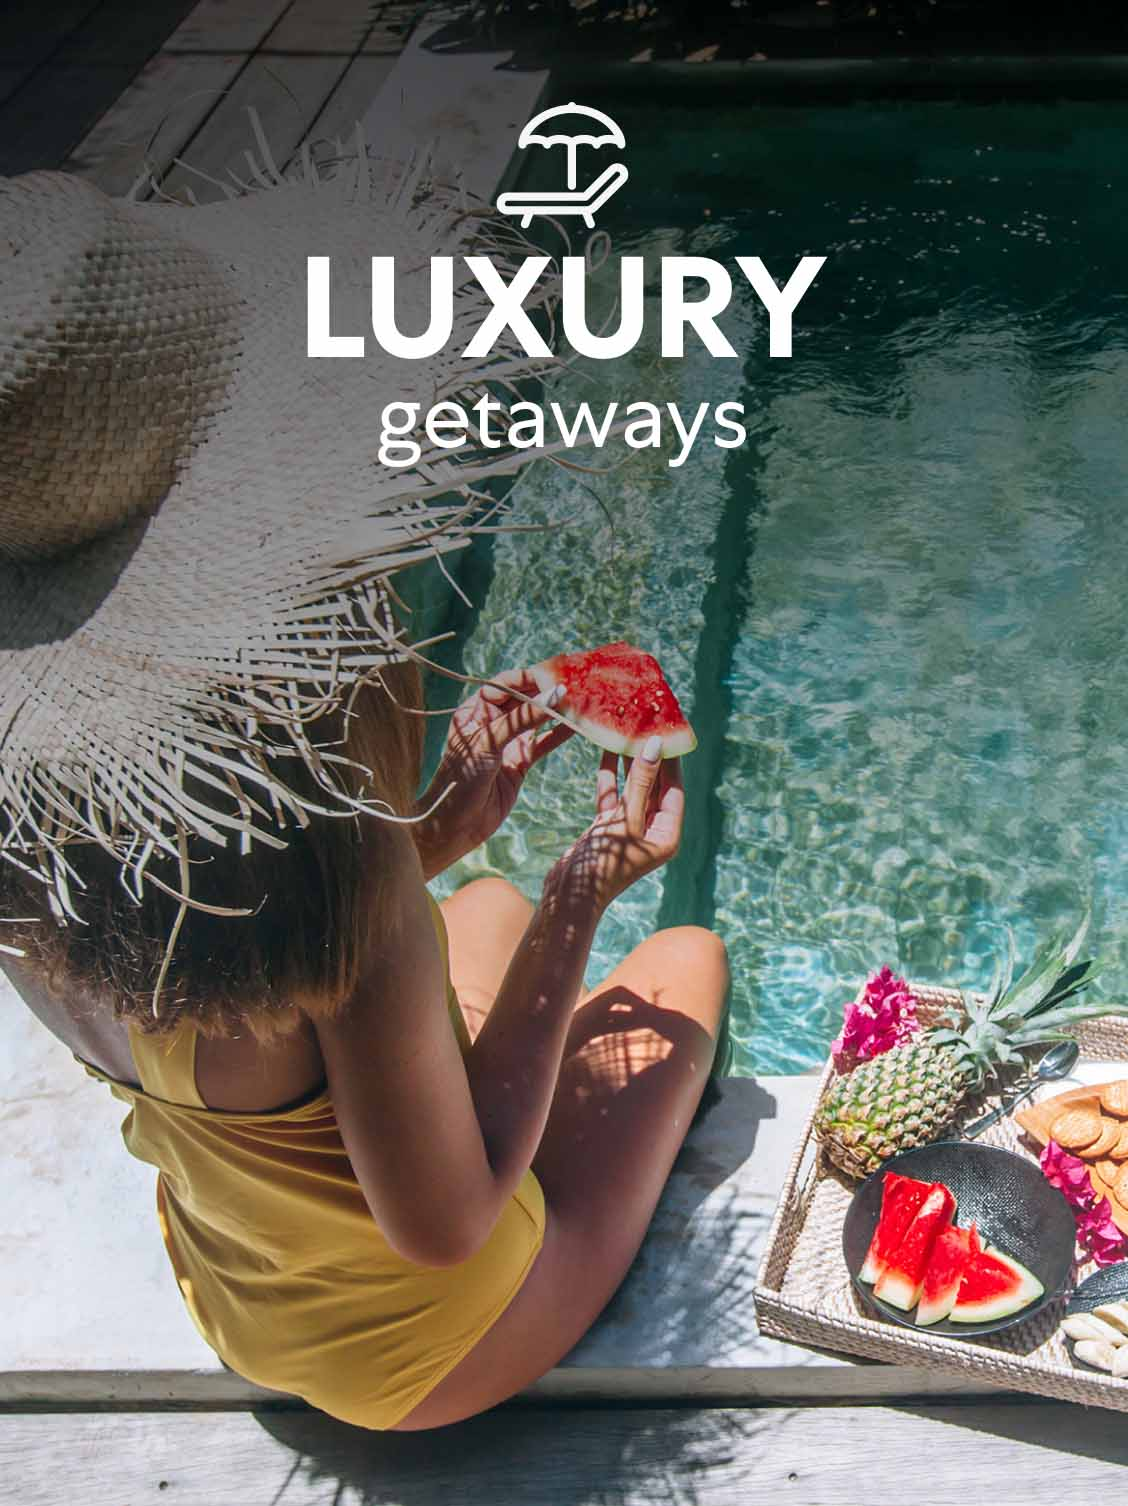 A little girl is eating fruit by the swimming pool. A superimposed title reads: Luxury getaways